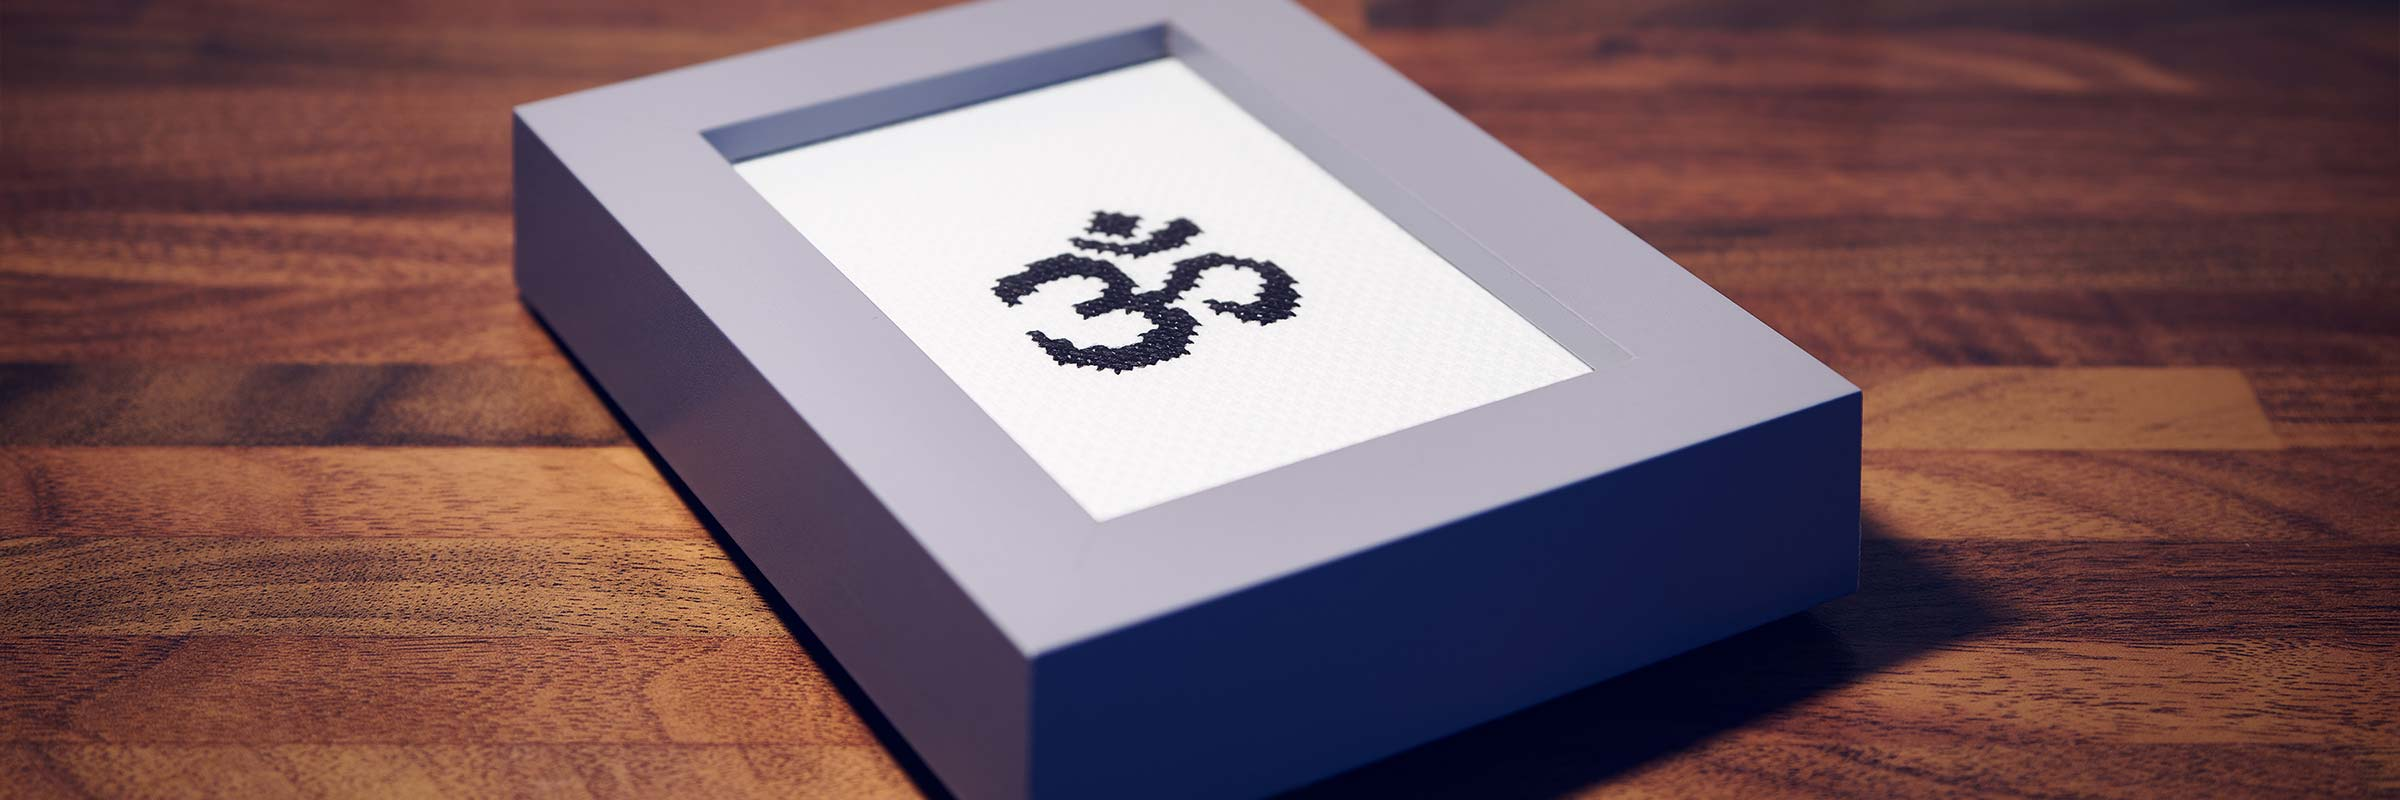 Sida Yoga Om Aum Cross Stitch Framed International Yoga Day Special Offer Handmade Craft Embroidery Unique Gift Special Lie Flat Banner